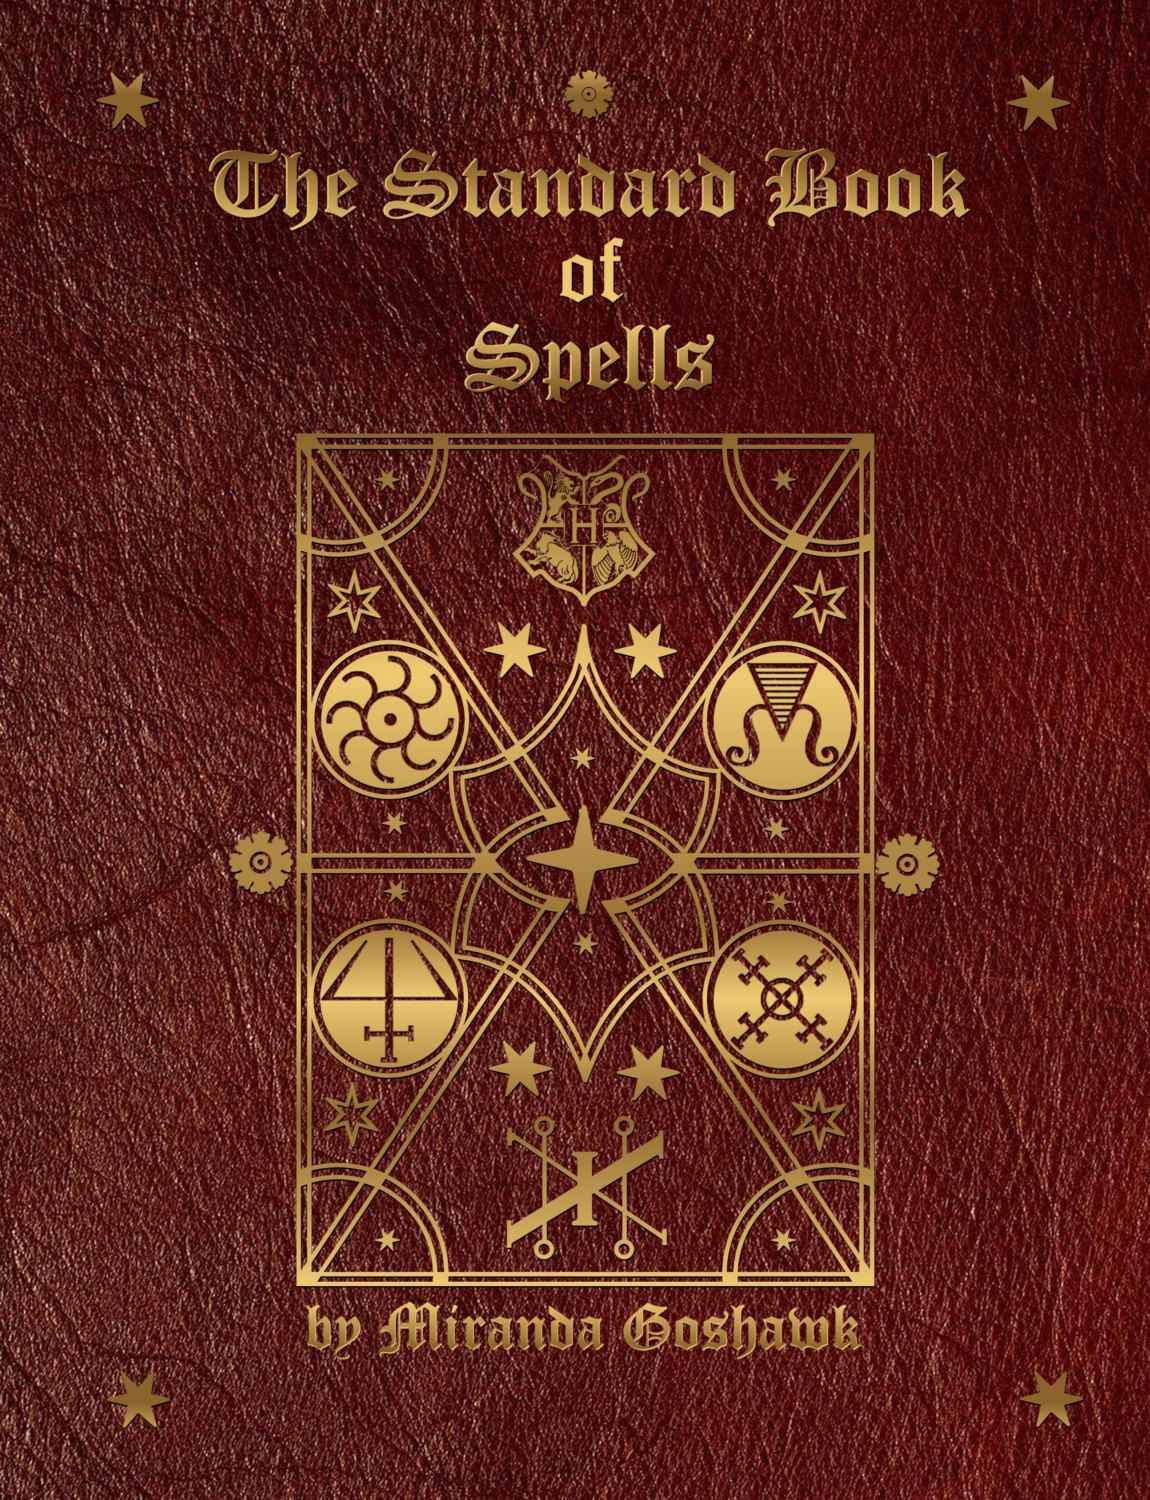 Book Cover Harry Potter Printable ~ Standard book of spells google search harry potter printables